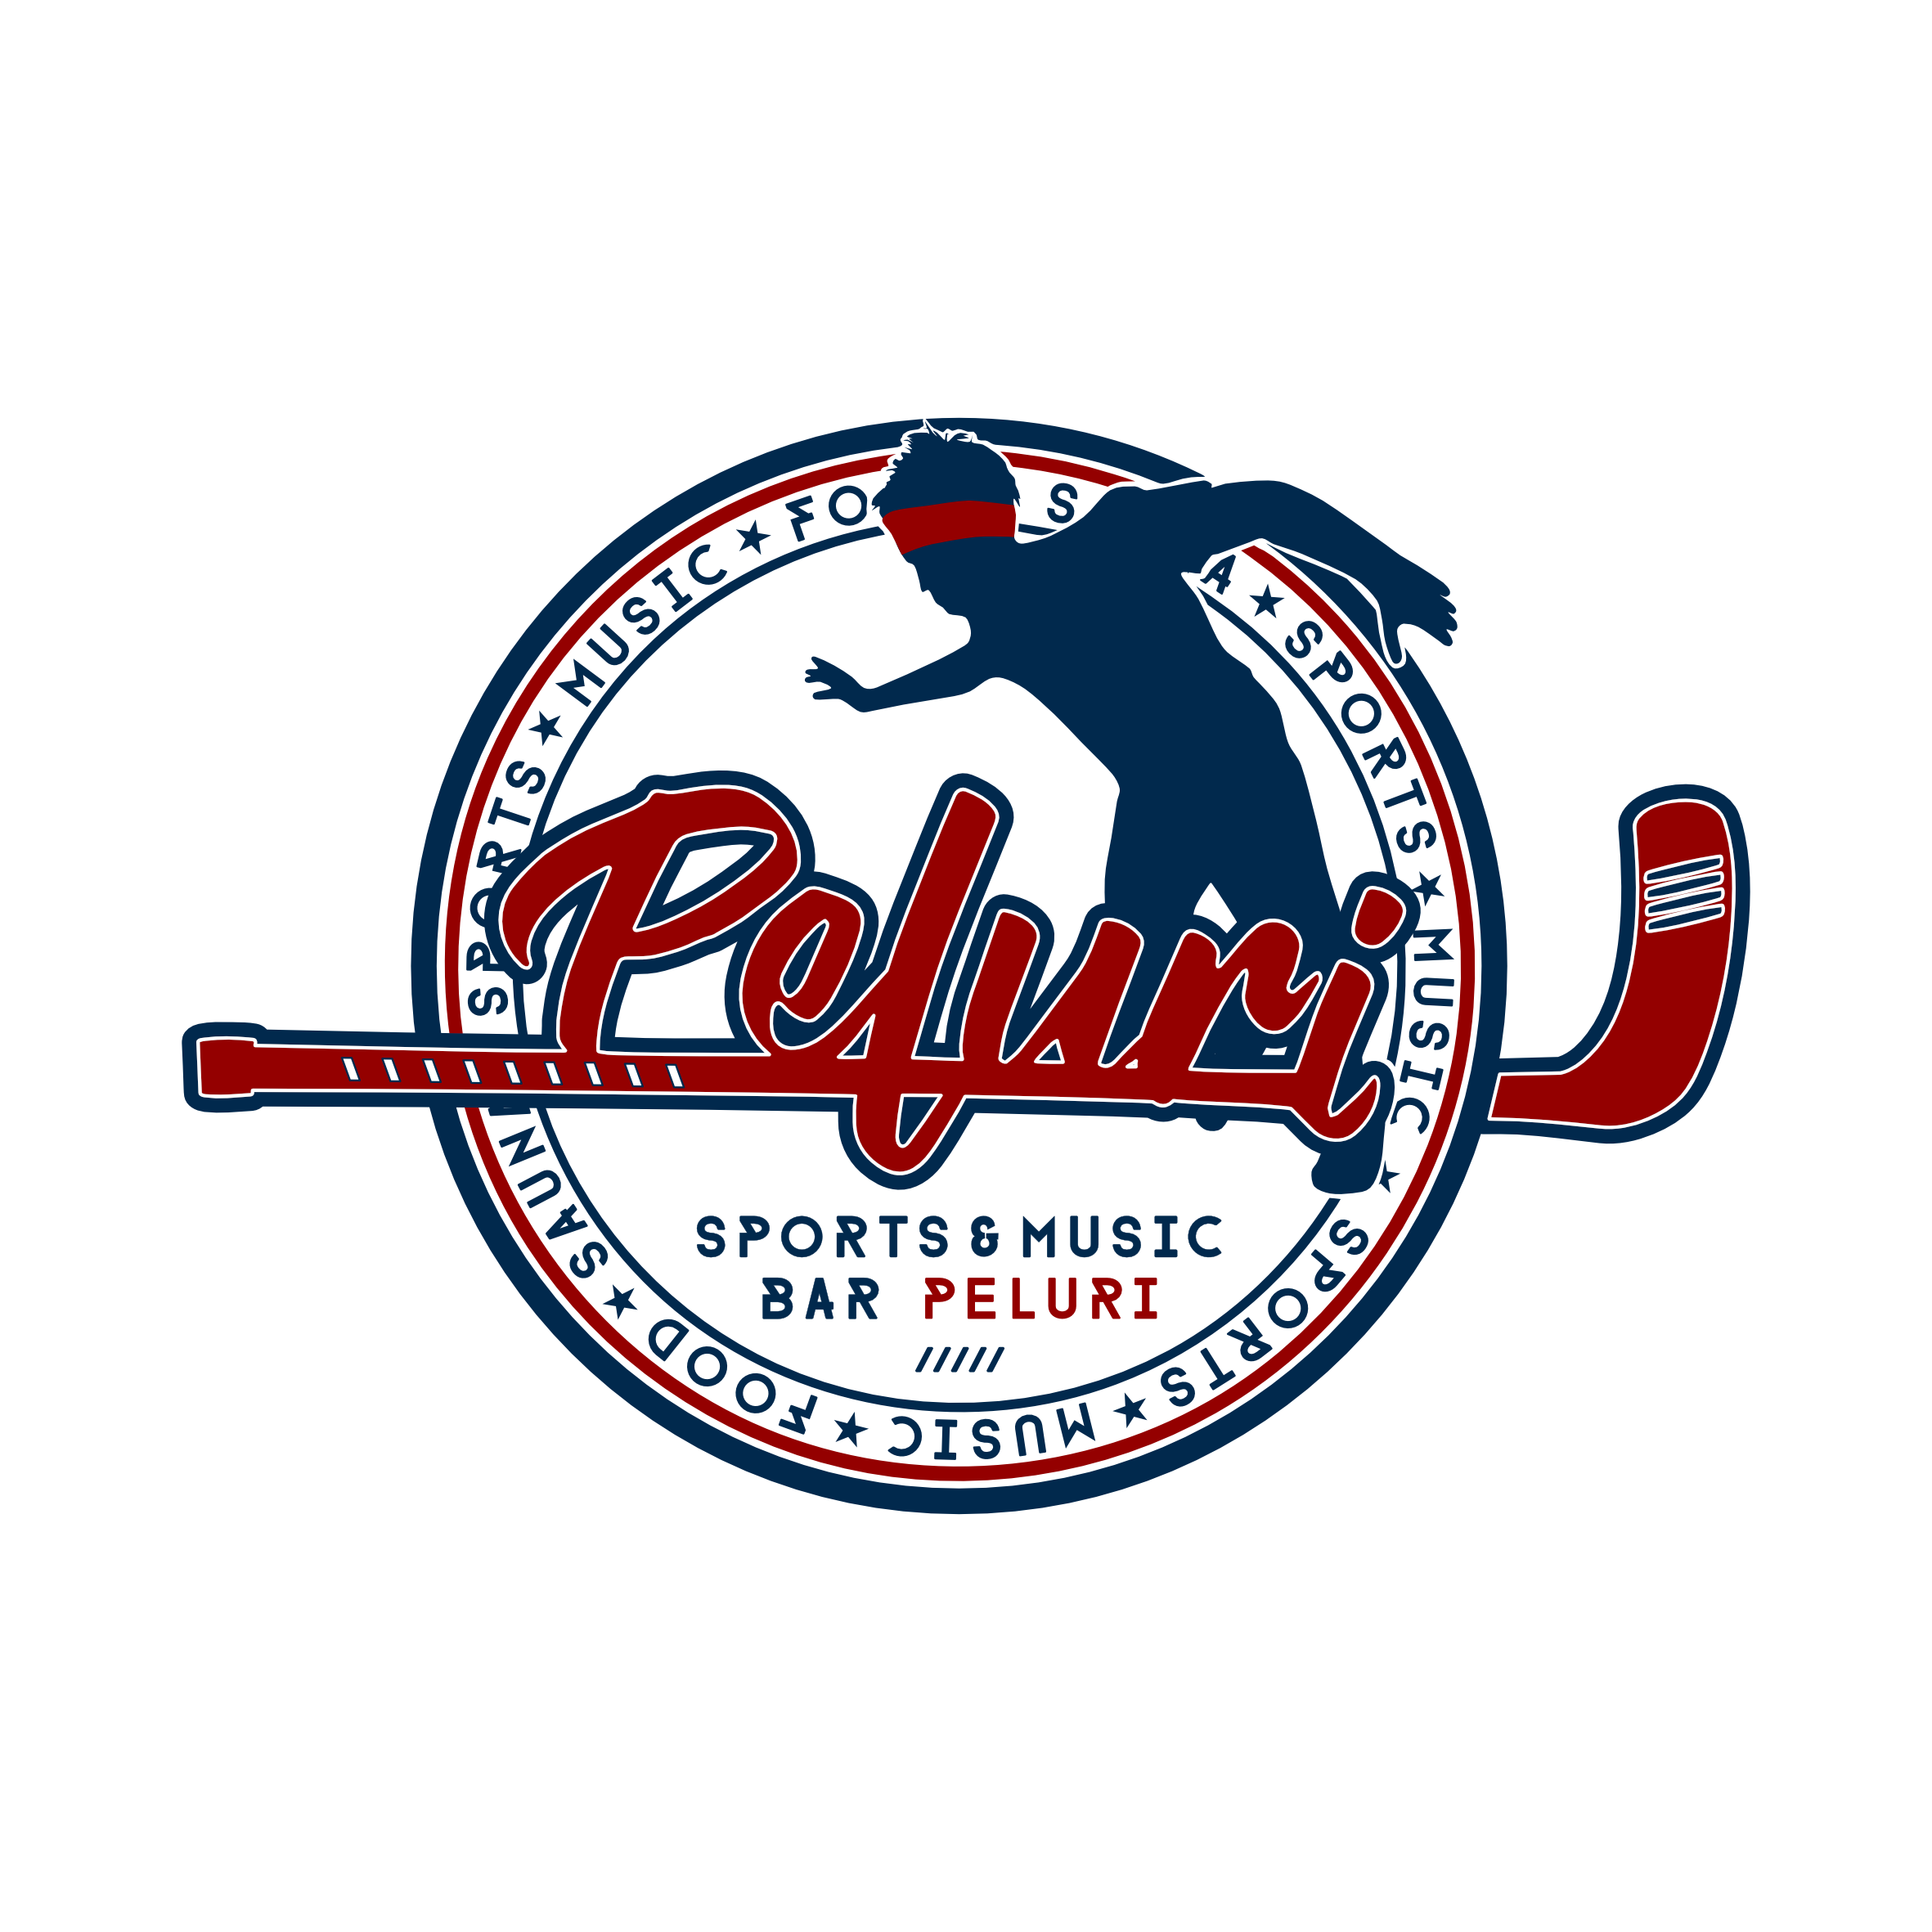 Sport & Music Bar Peluri